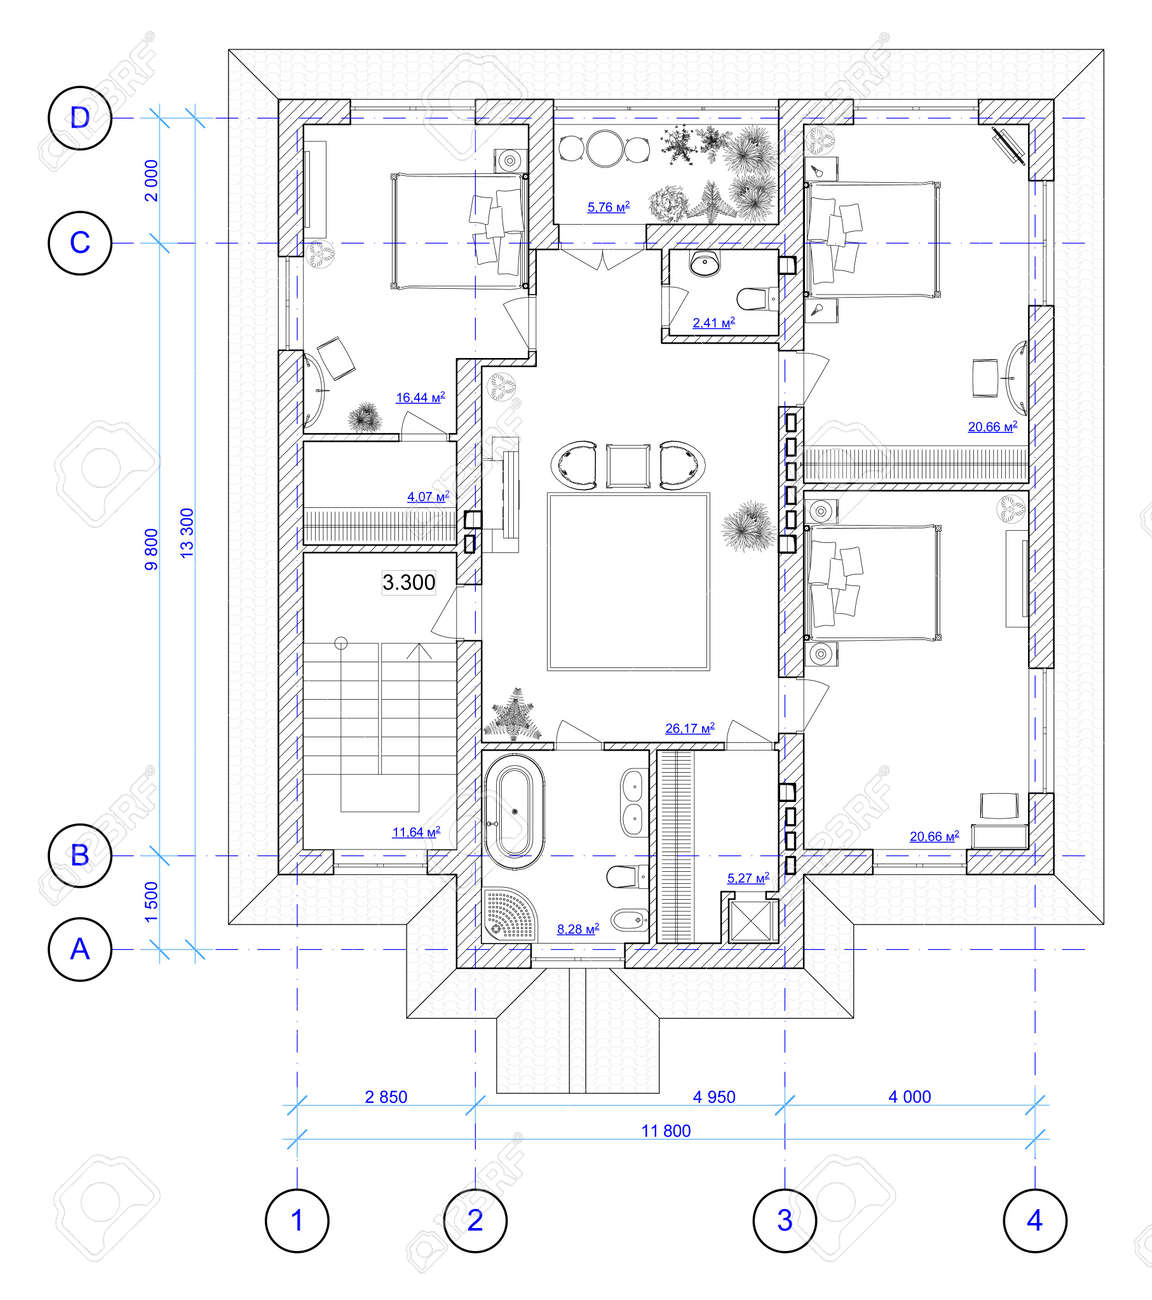 architectural black and white plan of 2 floor of house with a architectural black and white plan of 2 floor of house with a placement of furniture stock